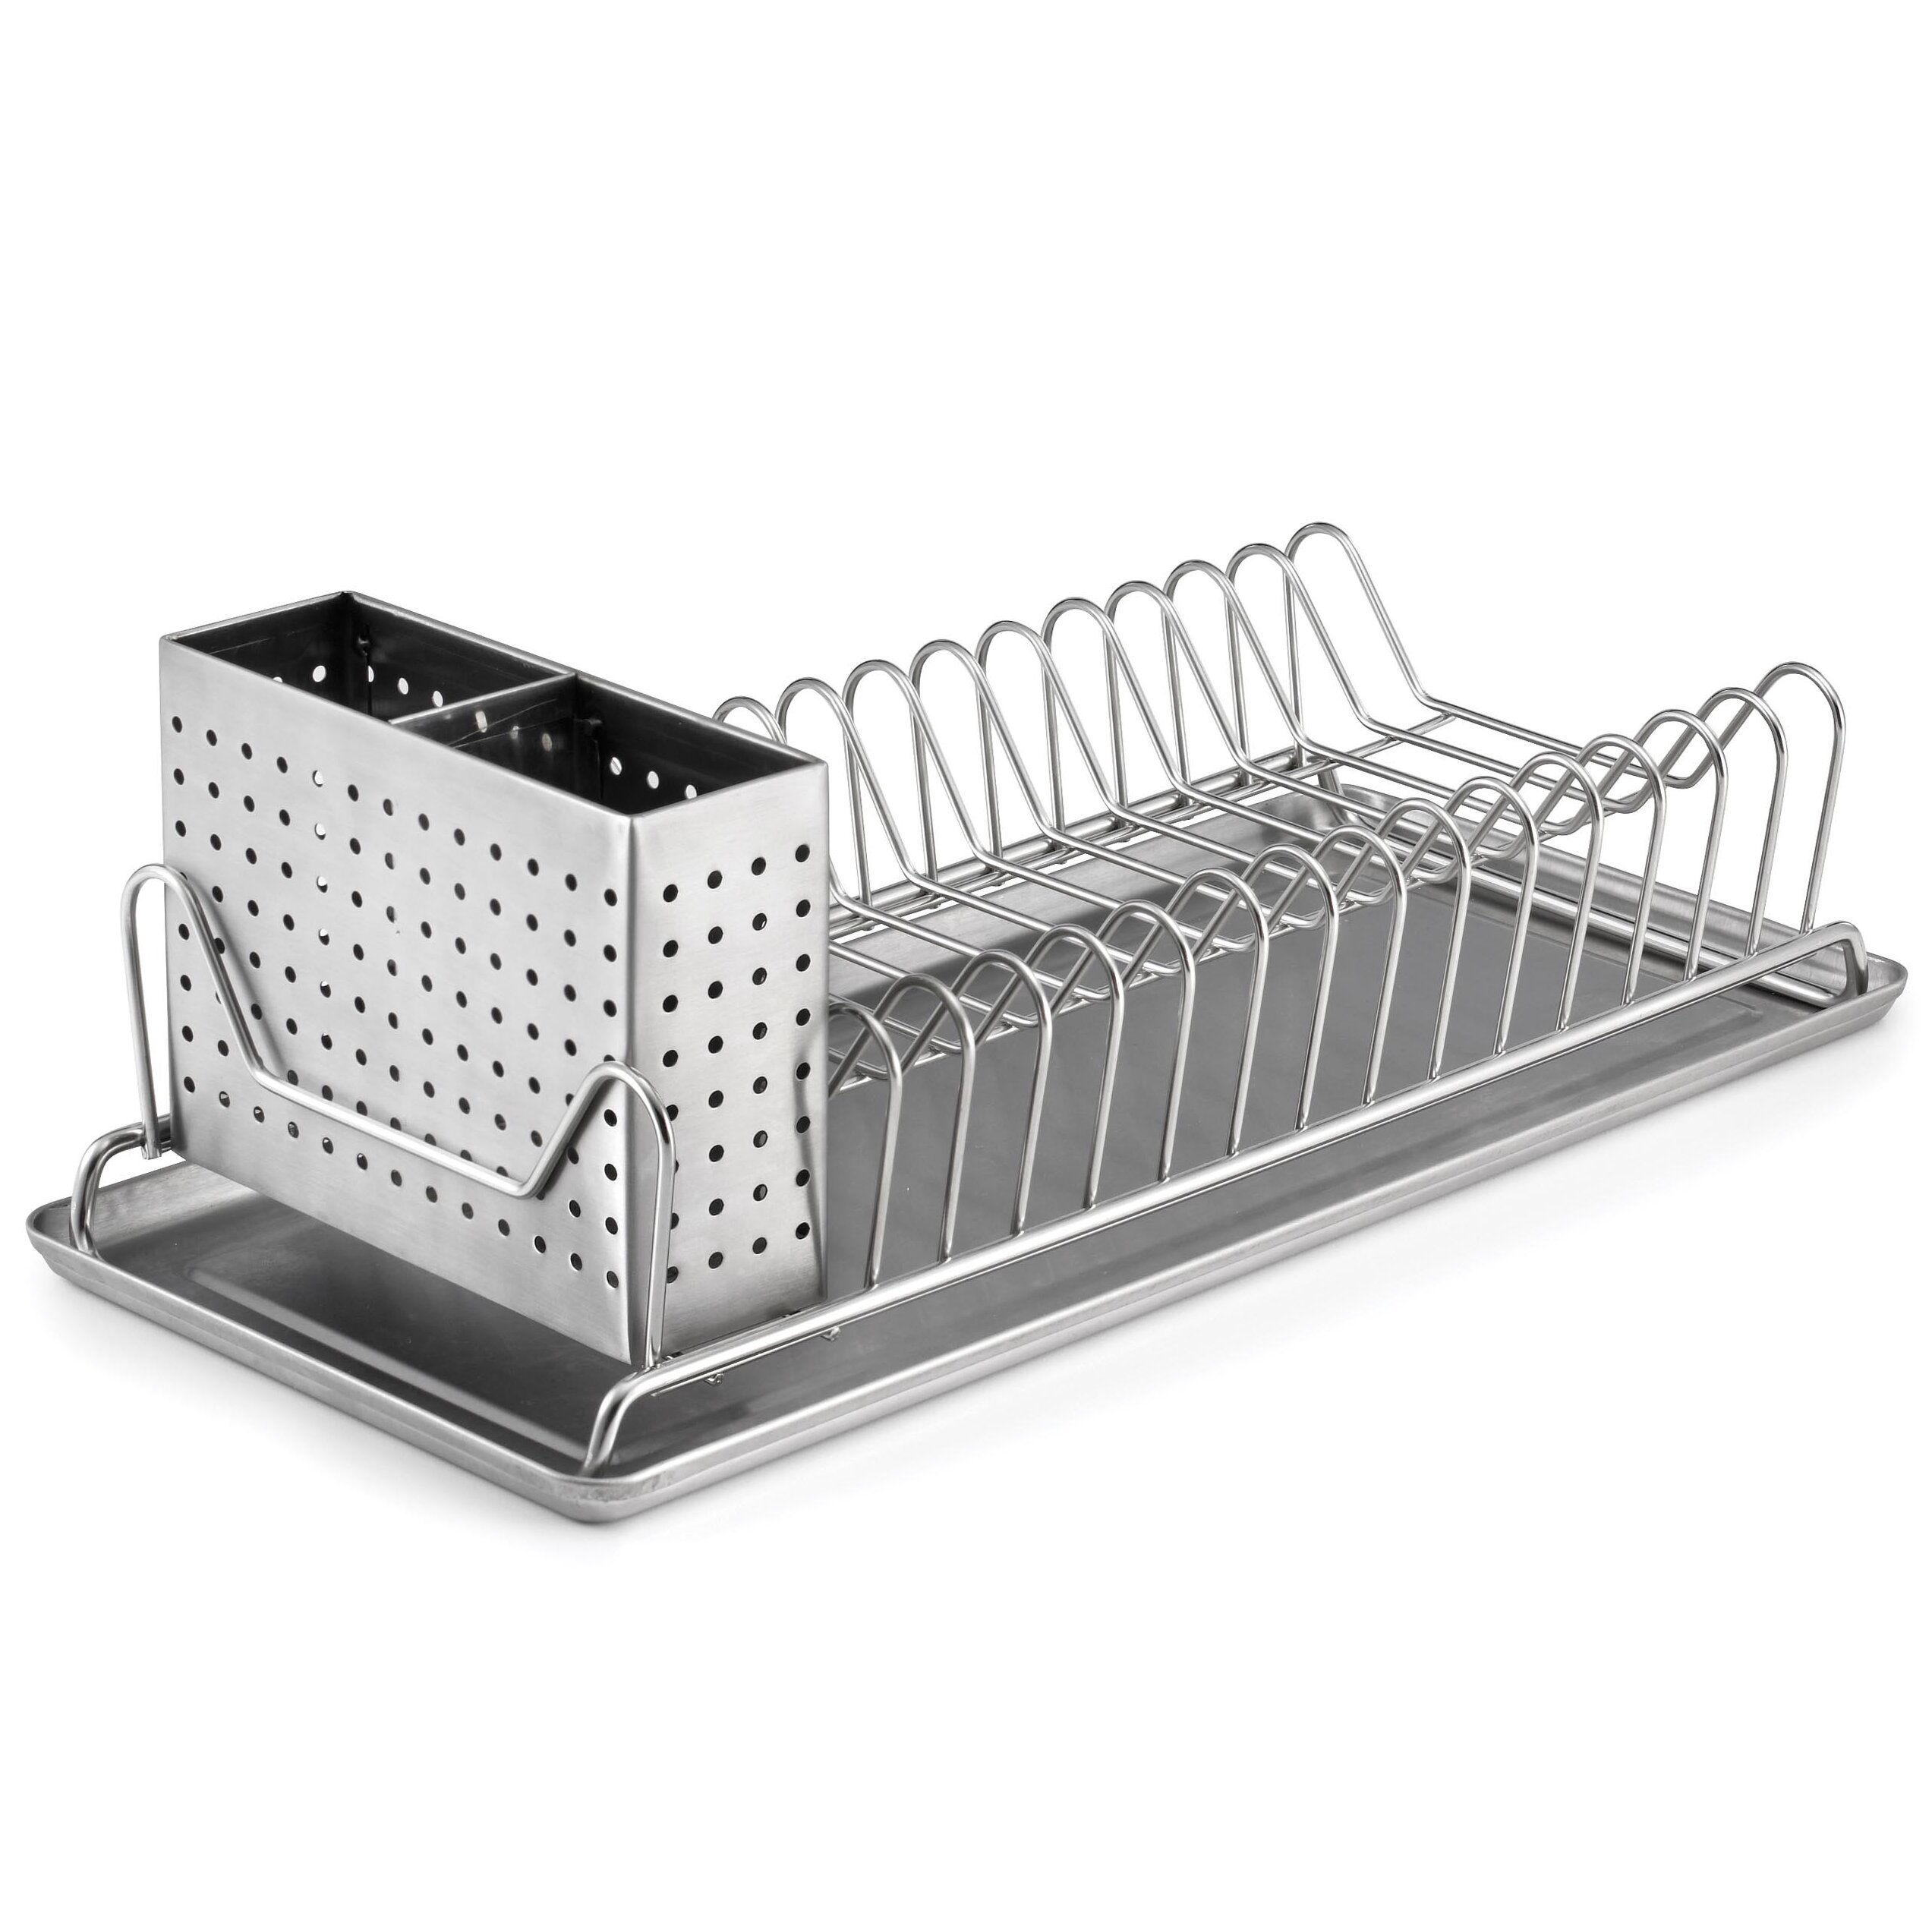 Polder products llc compact dish rack reviews wayfair Small stainless steel dish drying rack